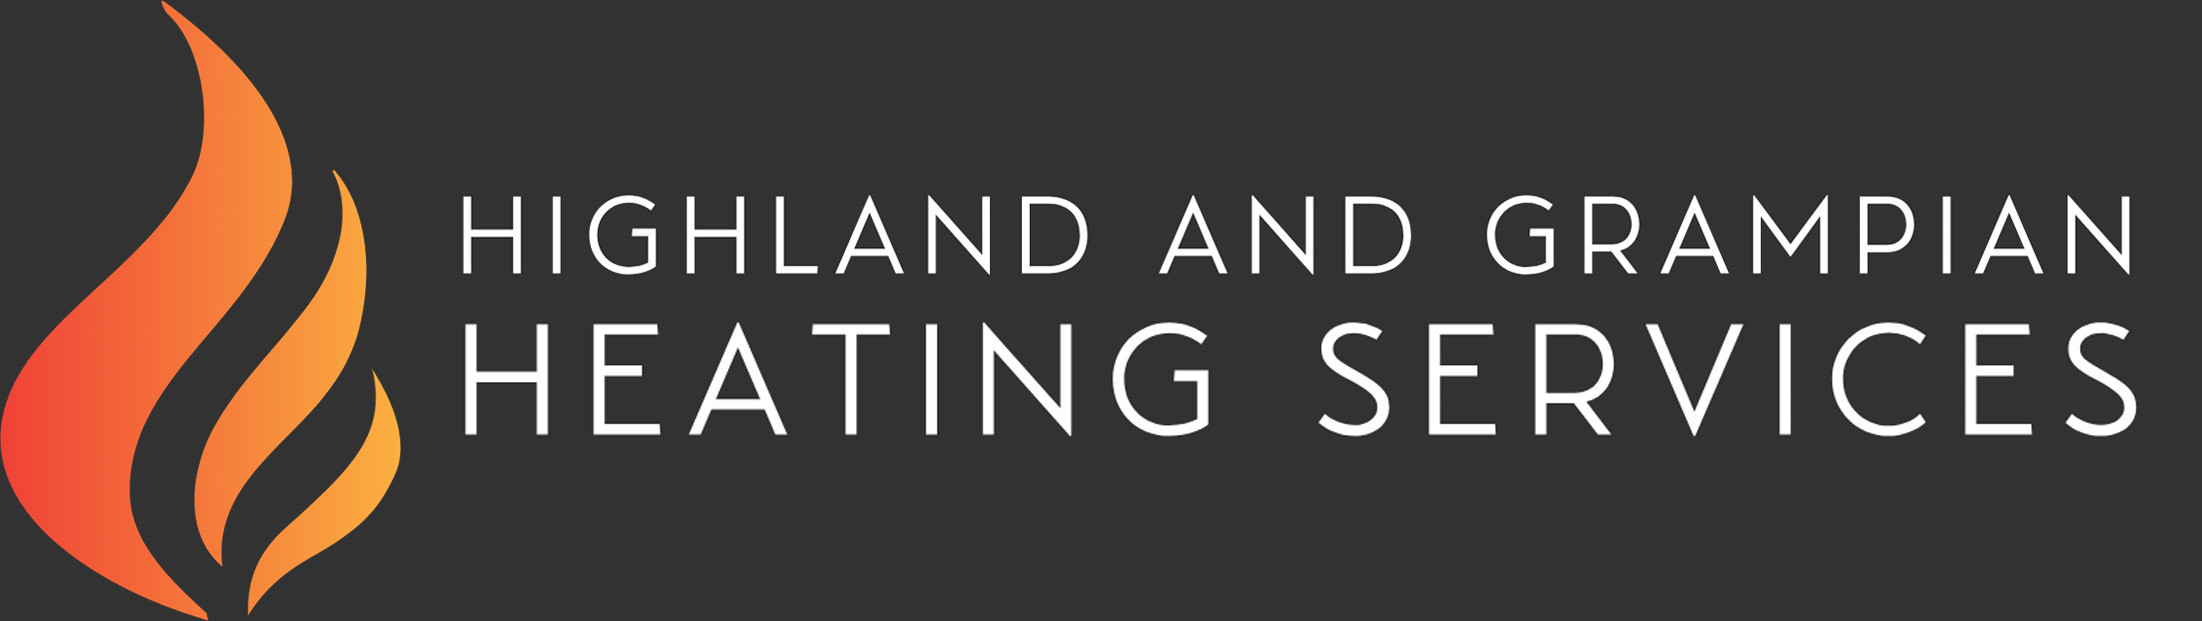 Highland and Grampian Heating Services